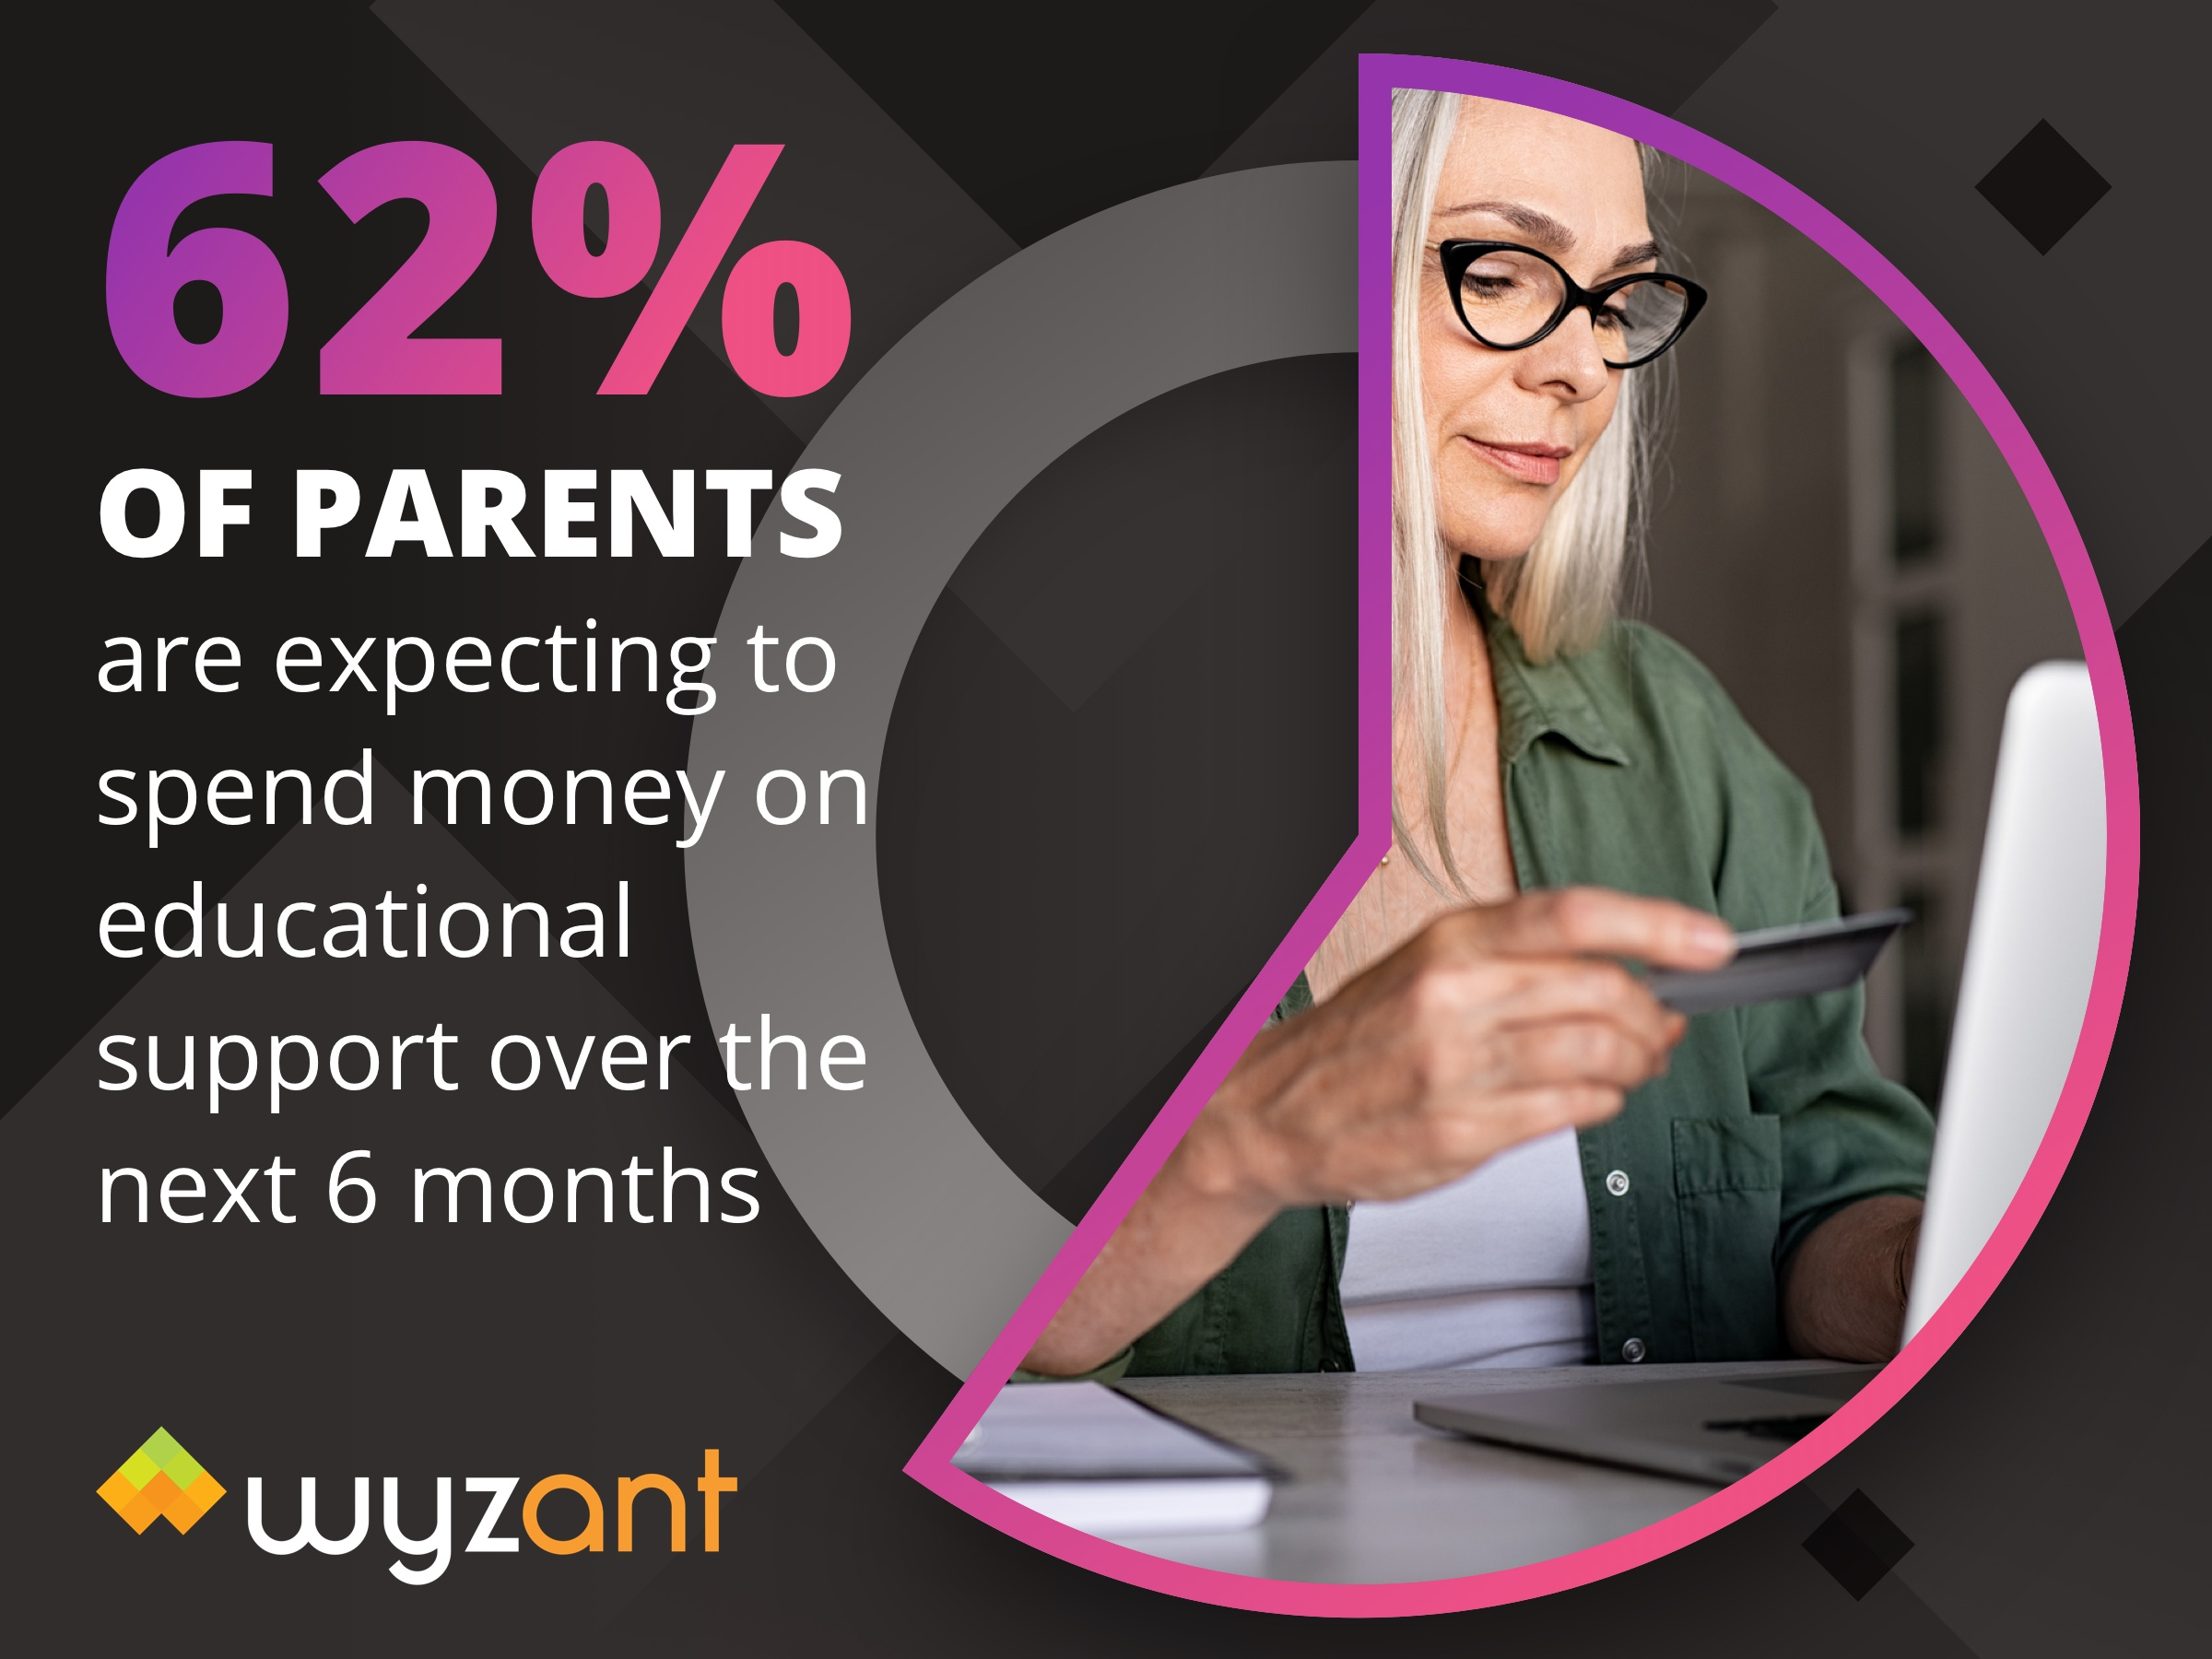 62 of parents are expecting to spend money on educational support over the next 6 months